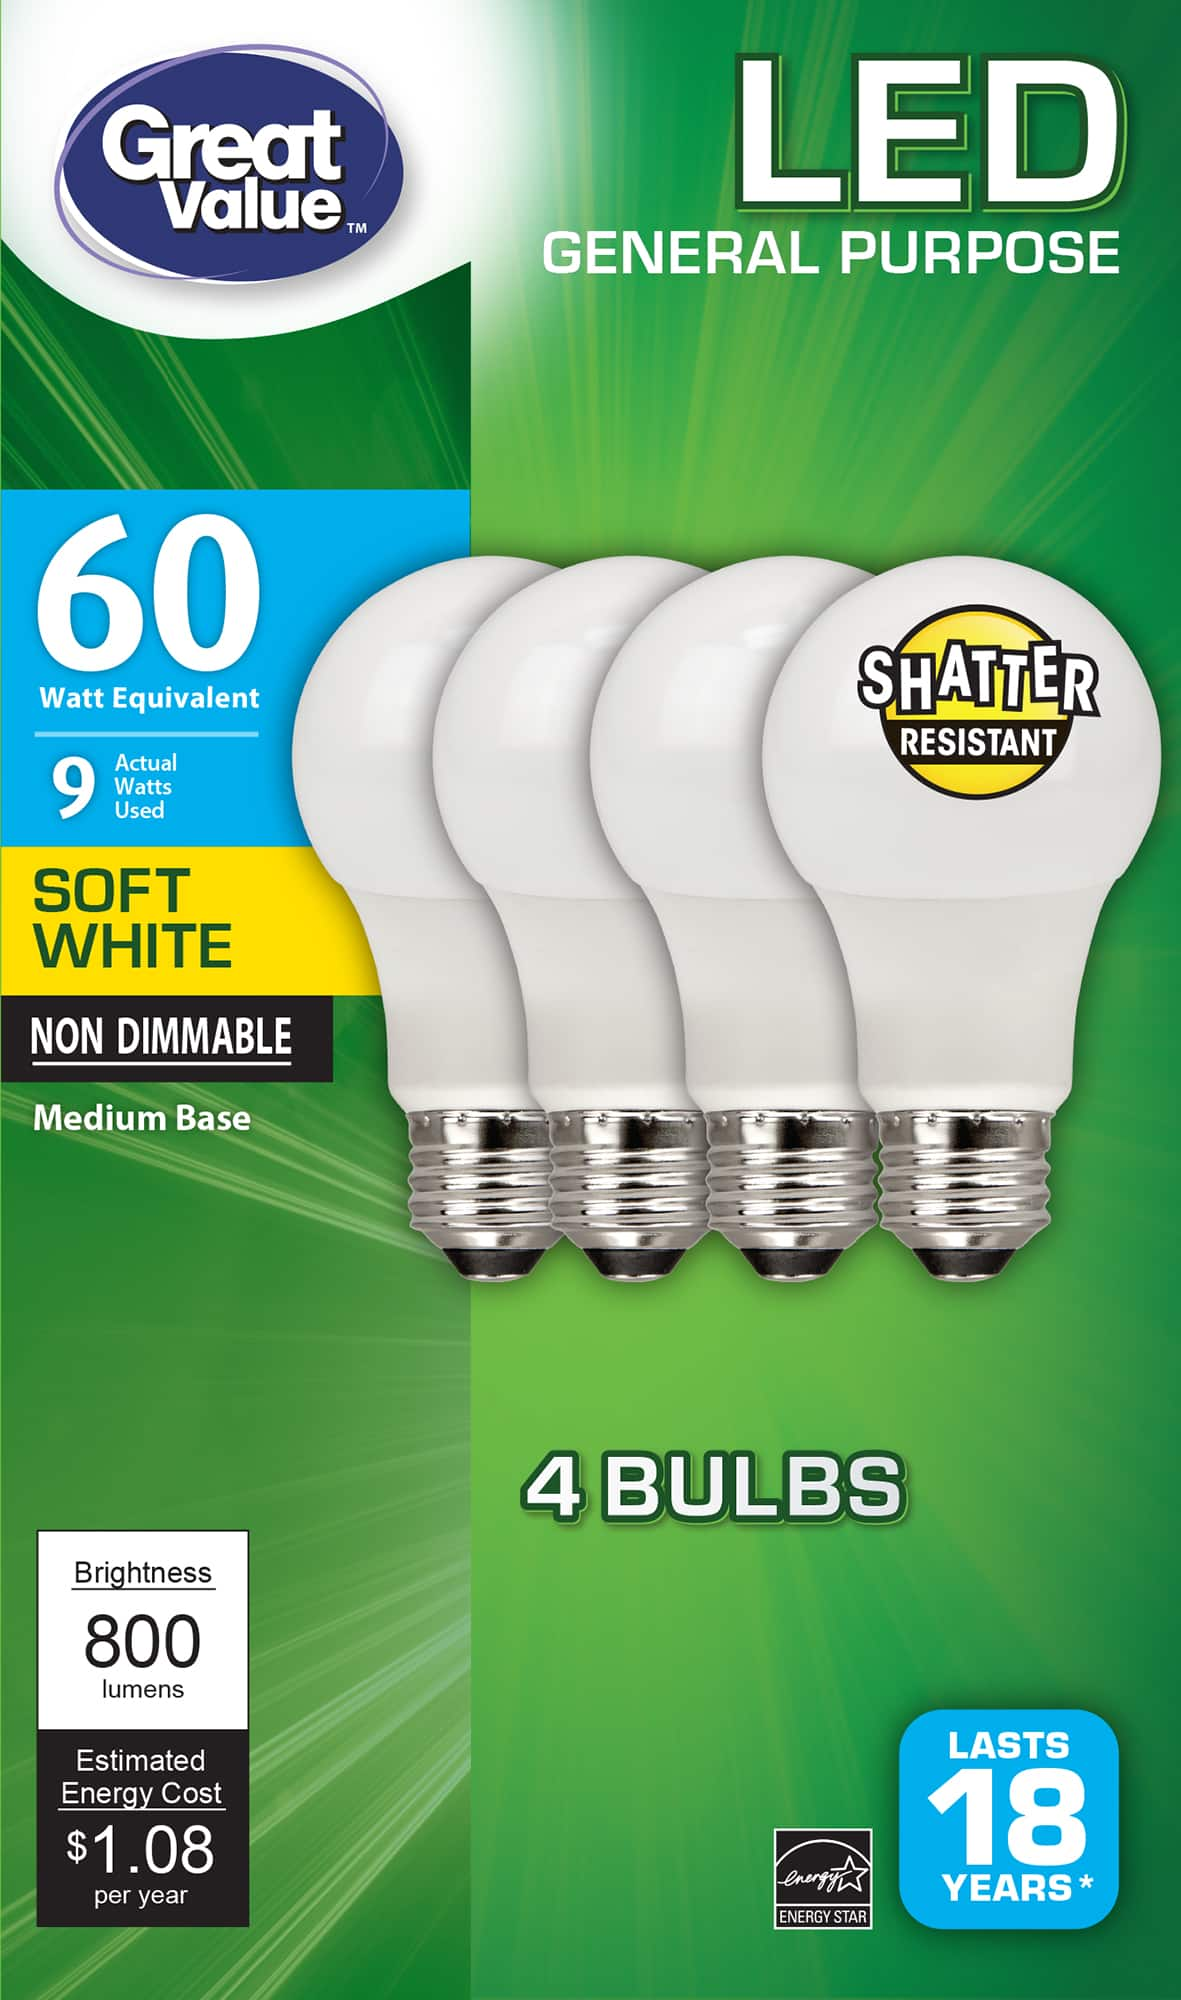 Great Value LED Light Bulb, 9W (60W Equivalent) A19 General Purpose Lamp E26 Medium Base, Non-dimmable, Soft White, 4-Pack - YMMV - $0.97